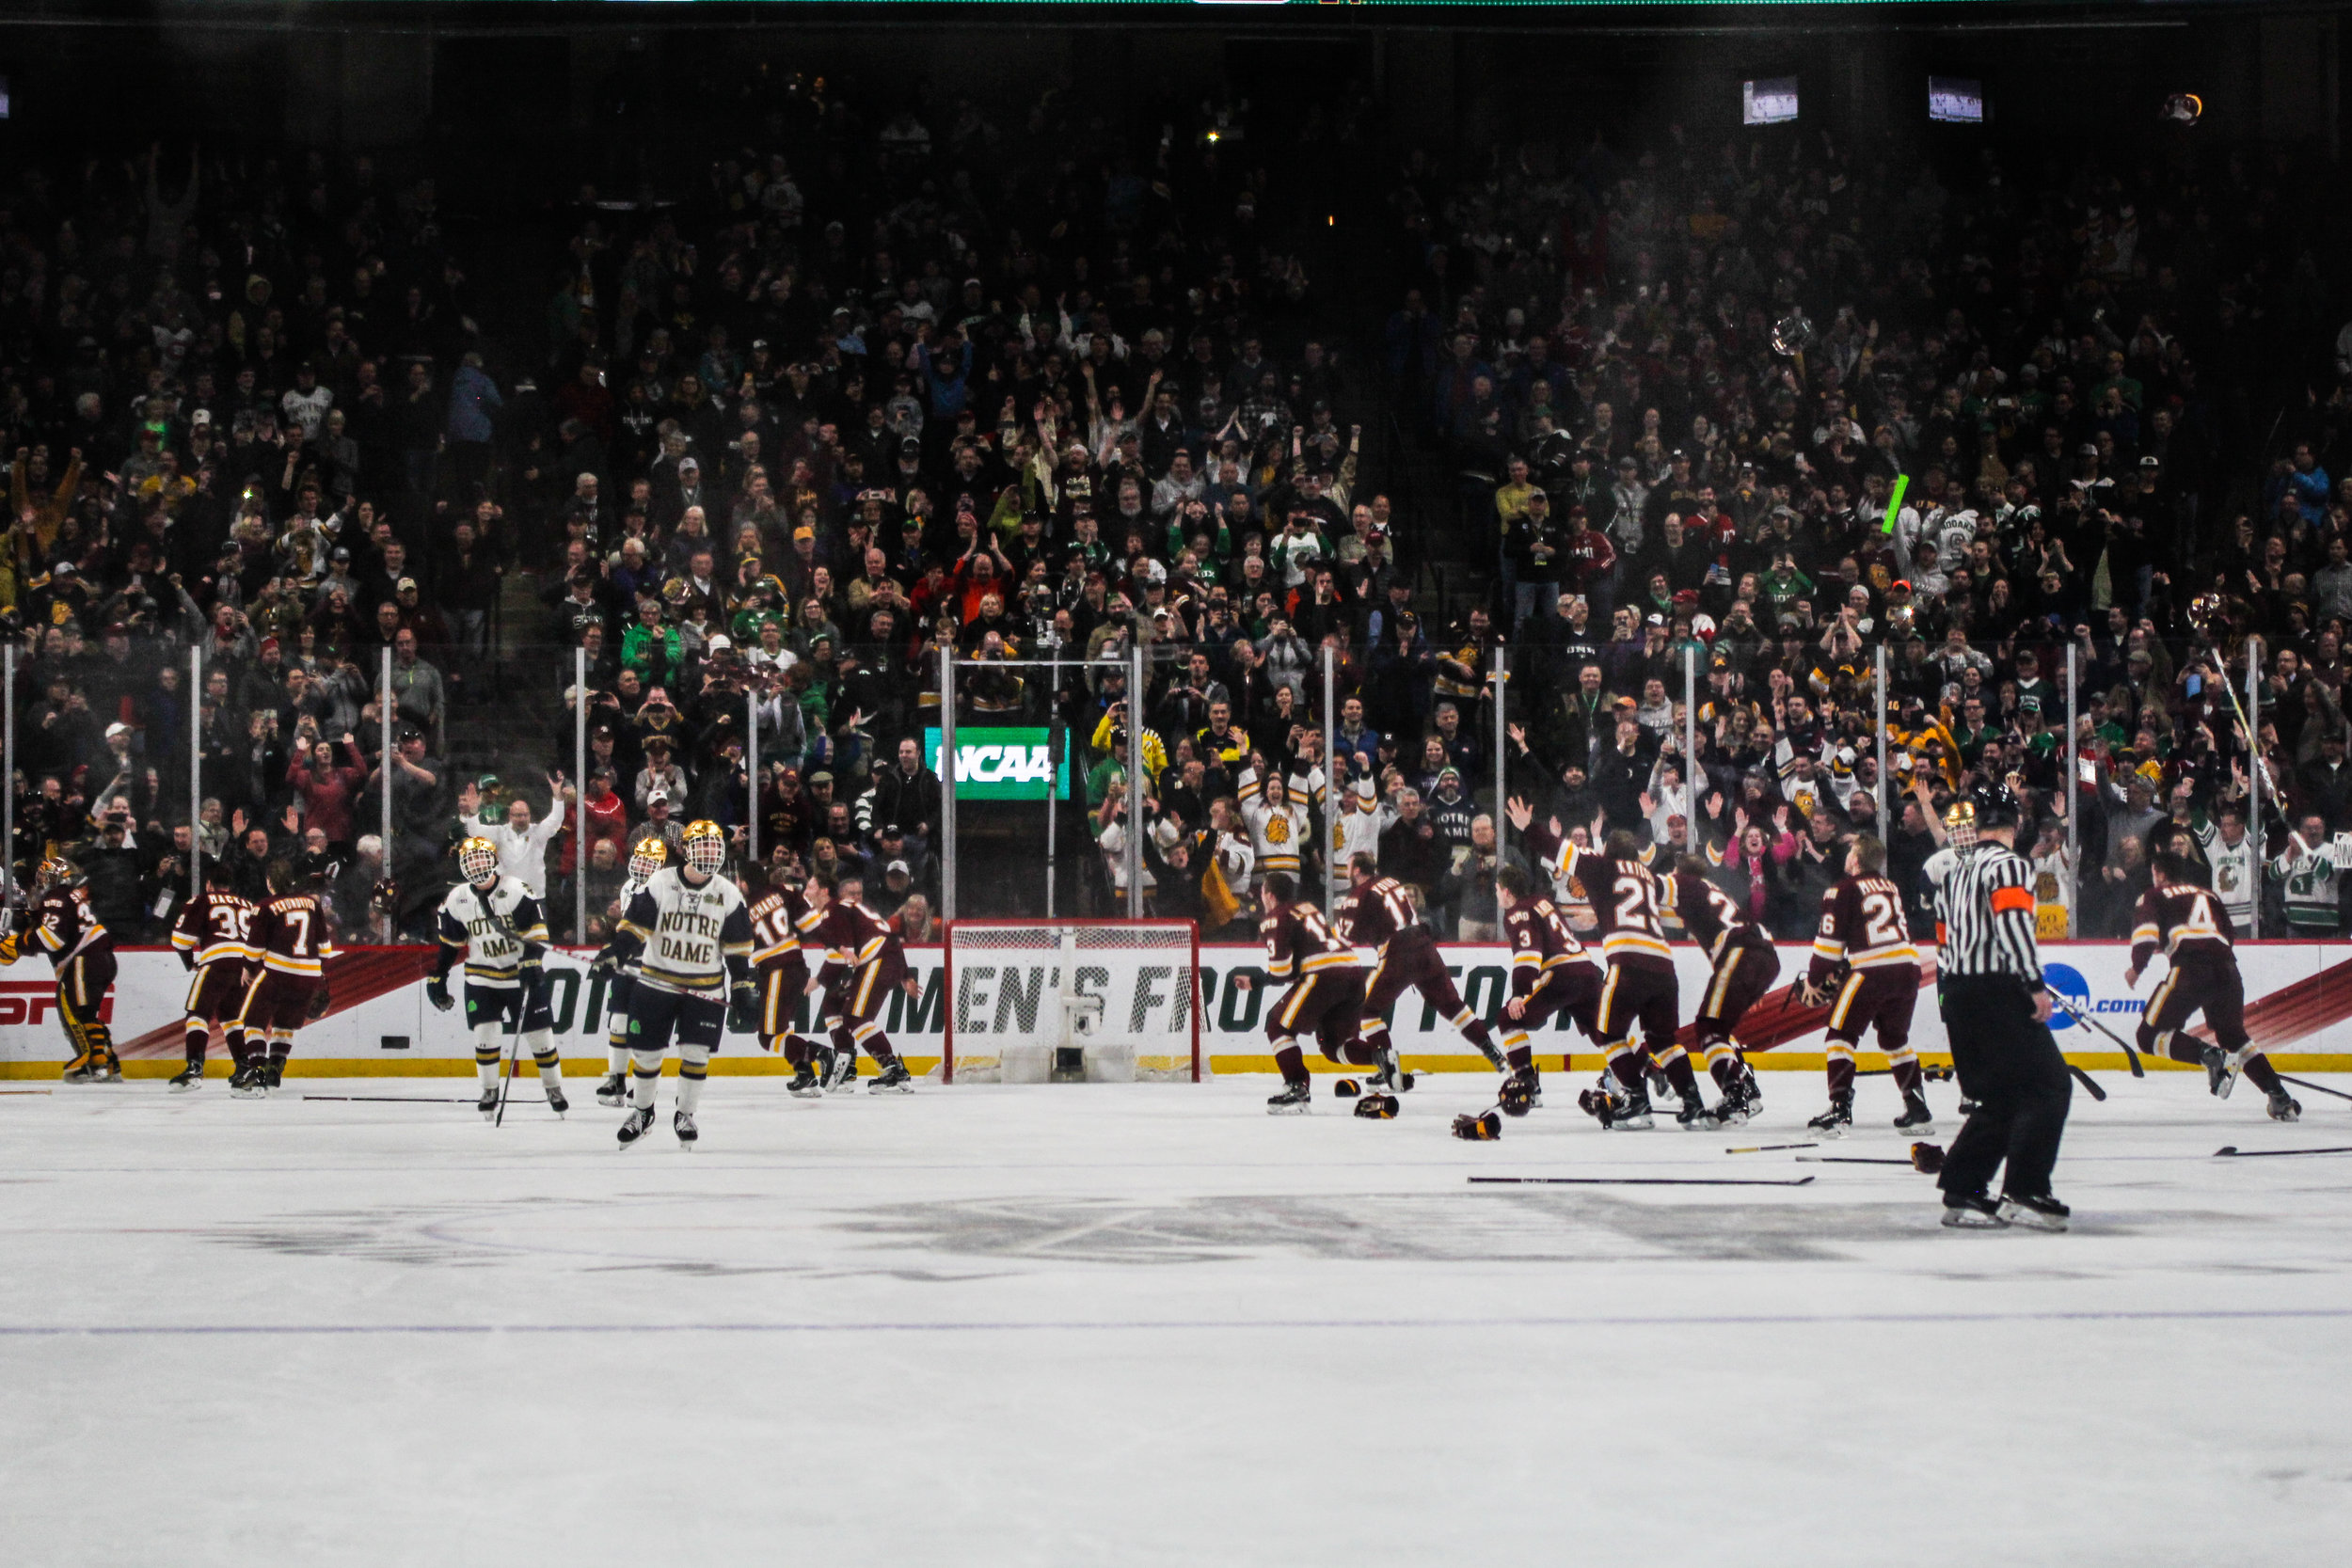 UMD celebrates its second national championship. Photo by Krista Mathes